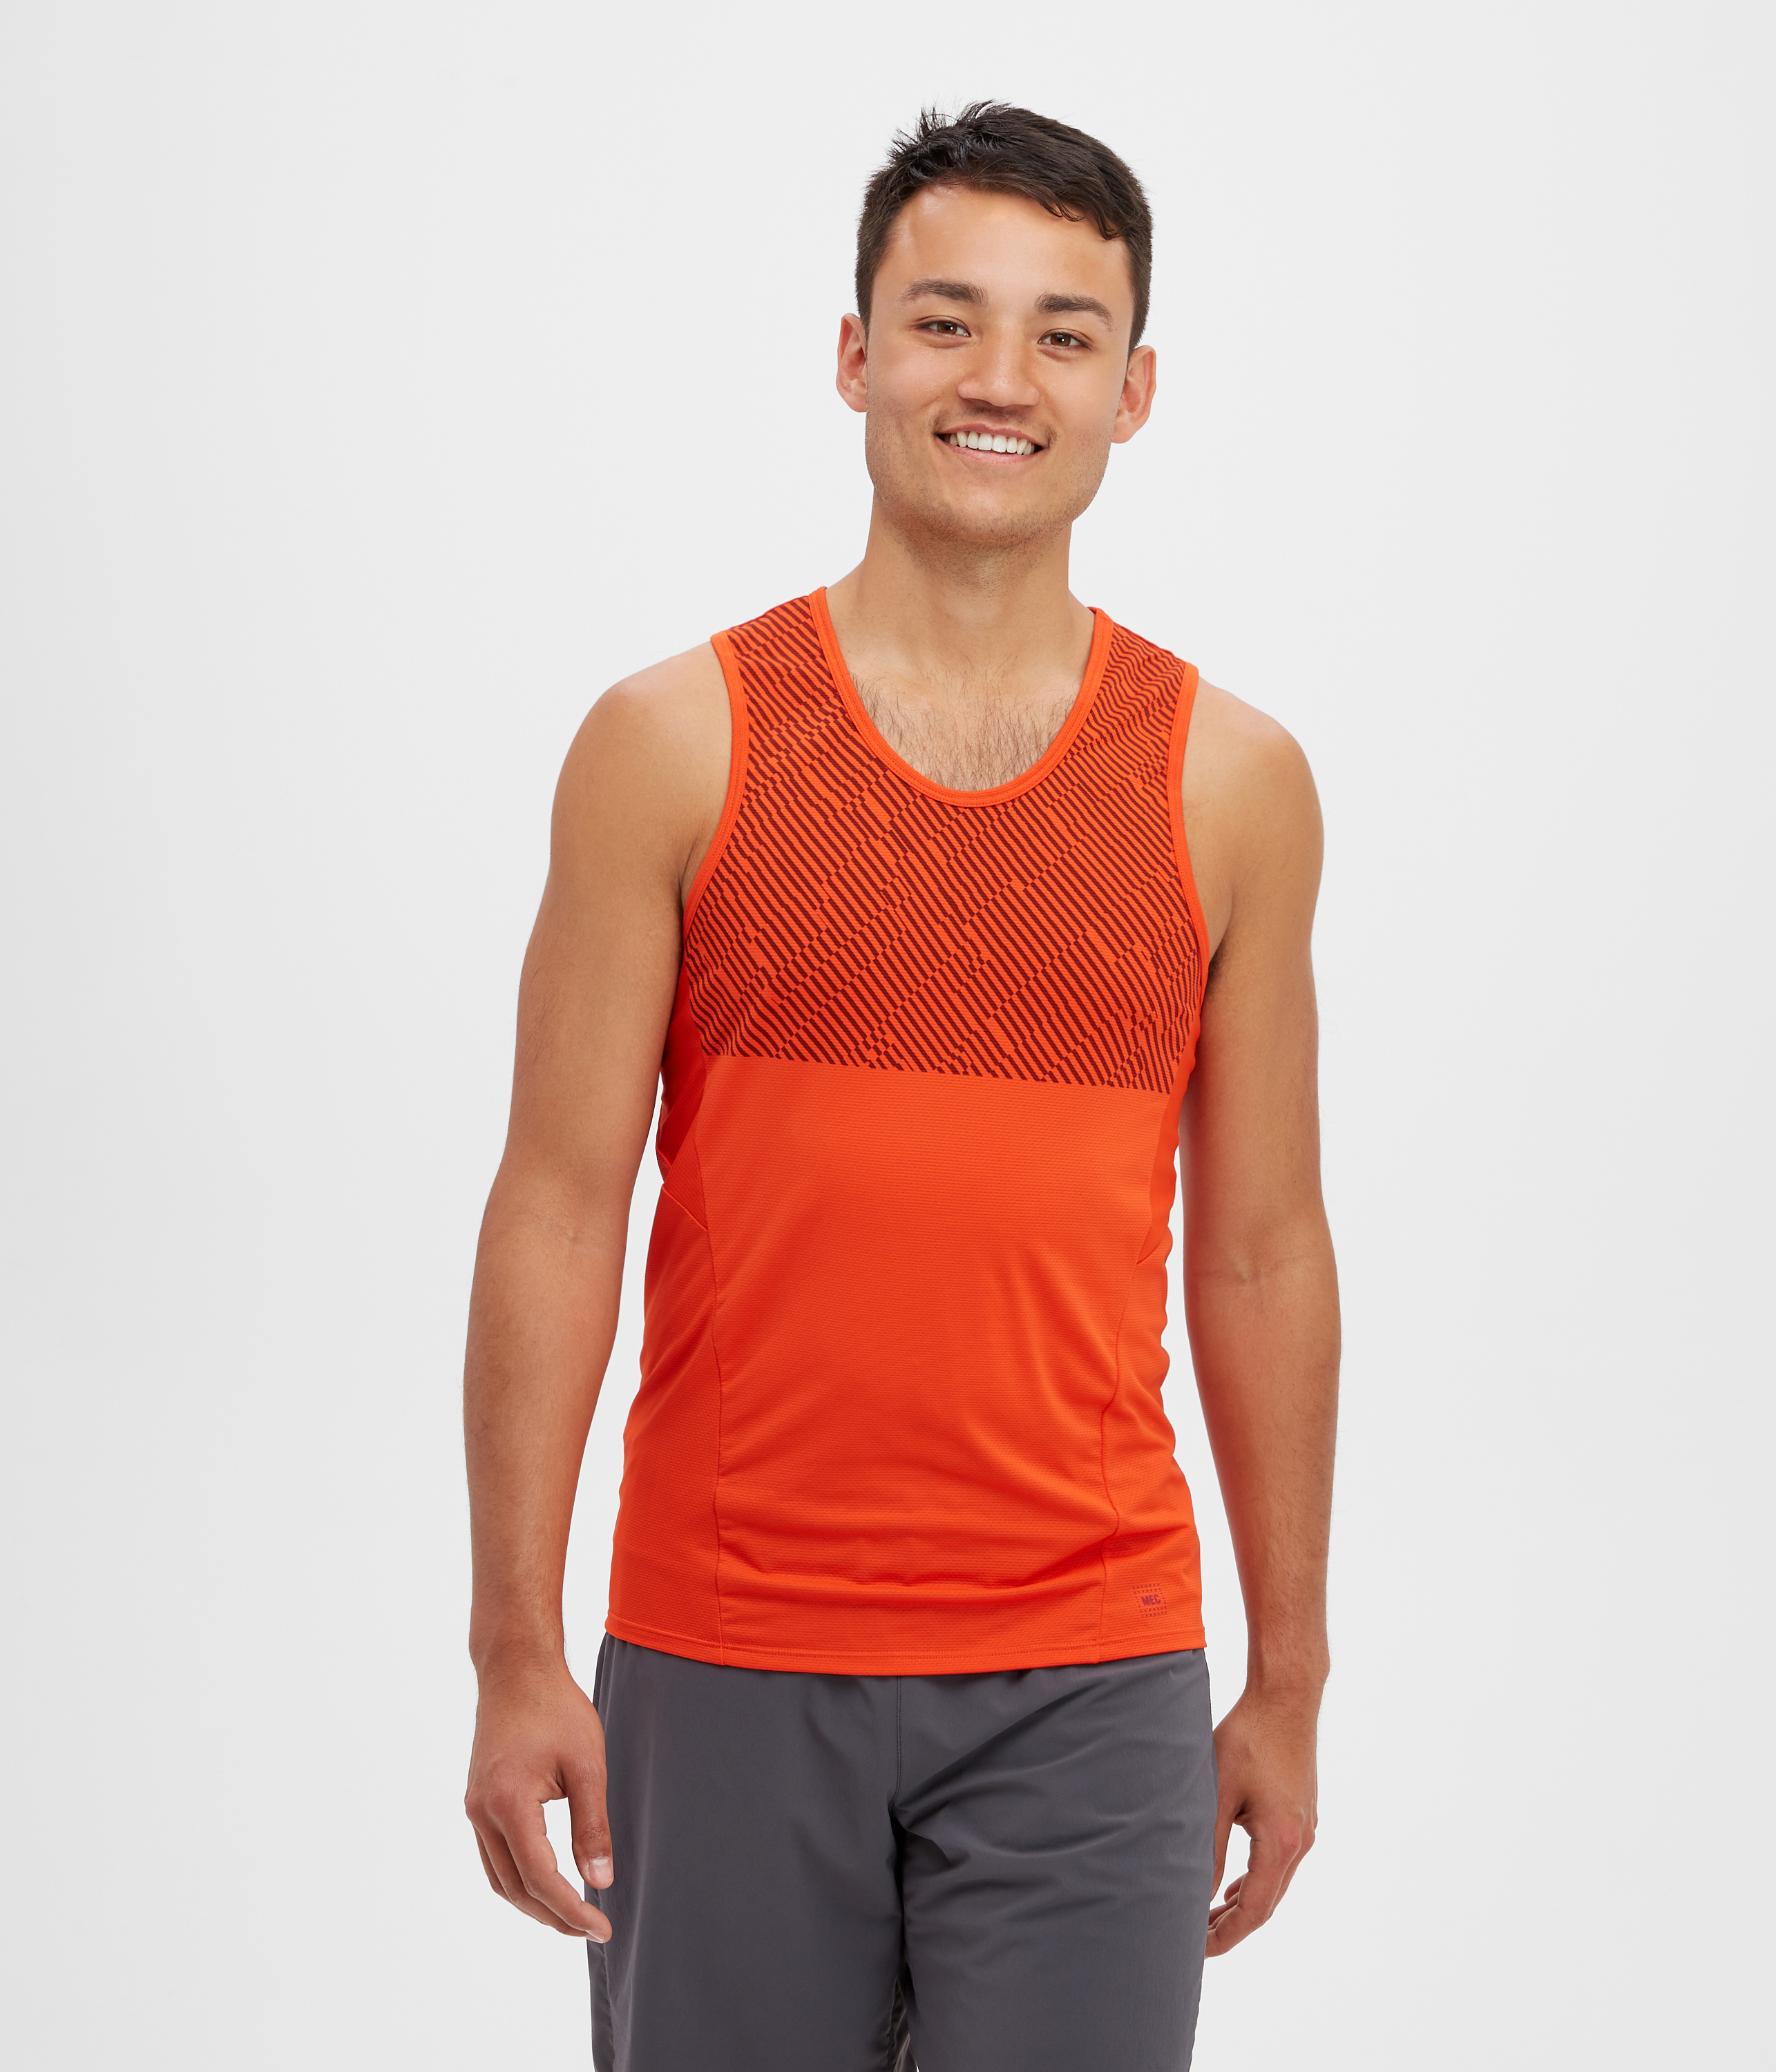 c896b77225b60f Men s Tanks and sleeveless shirts